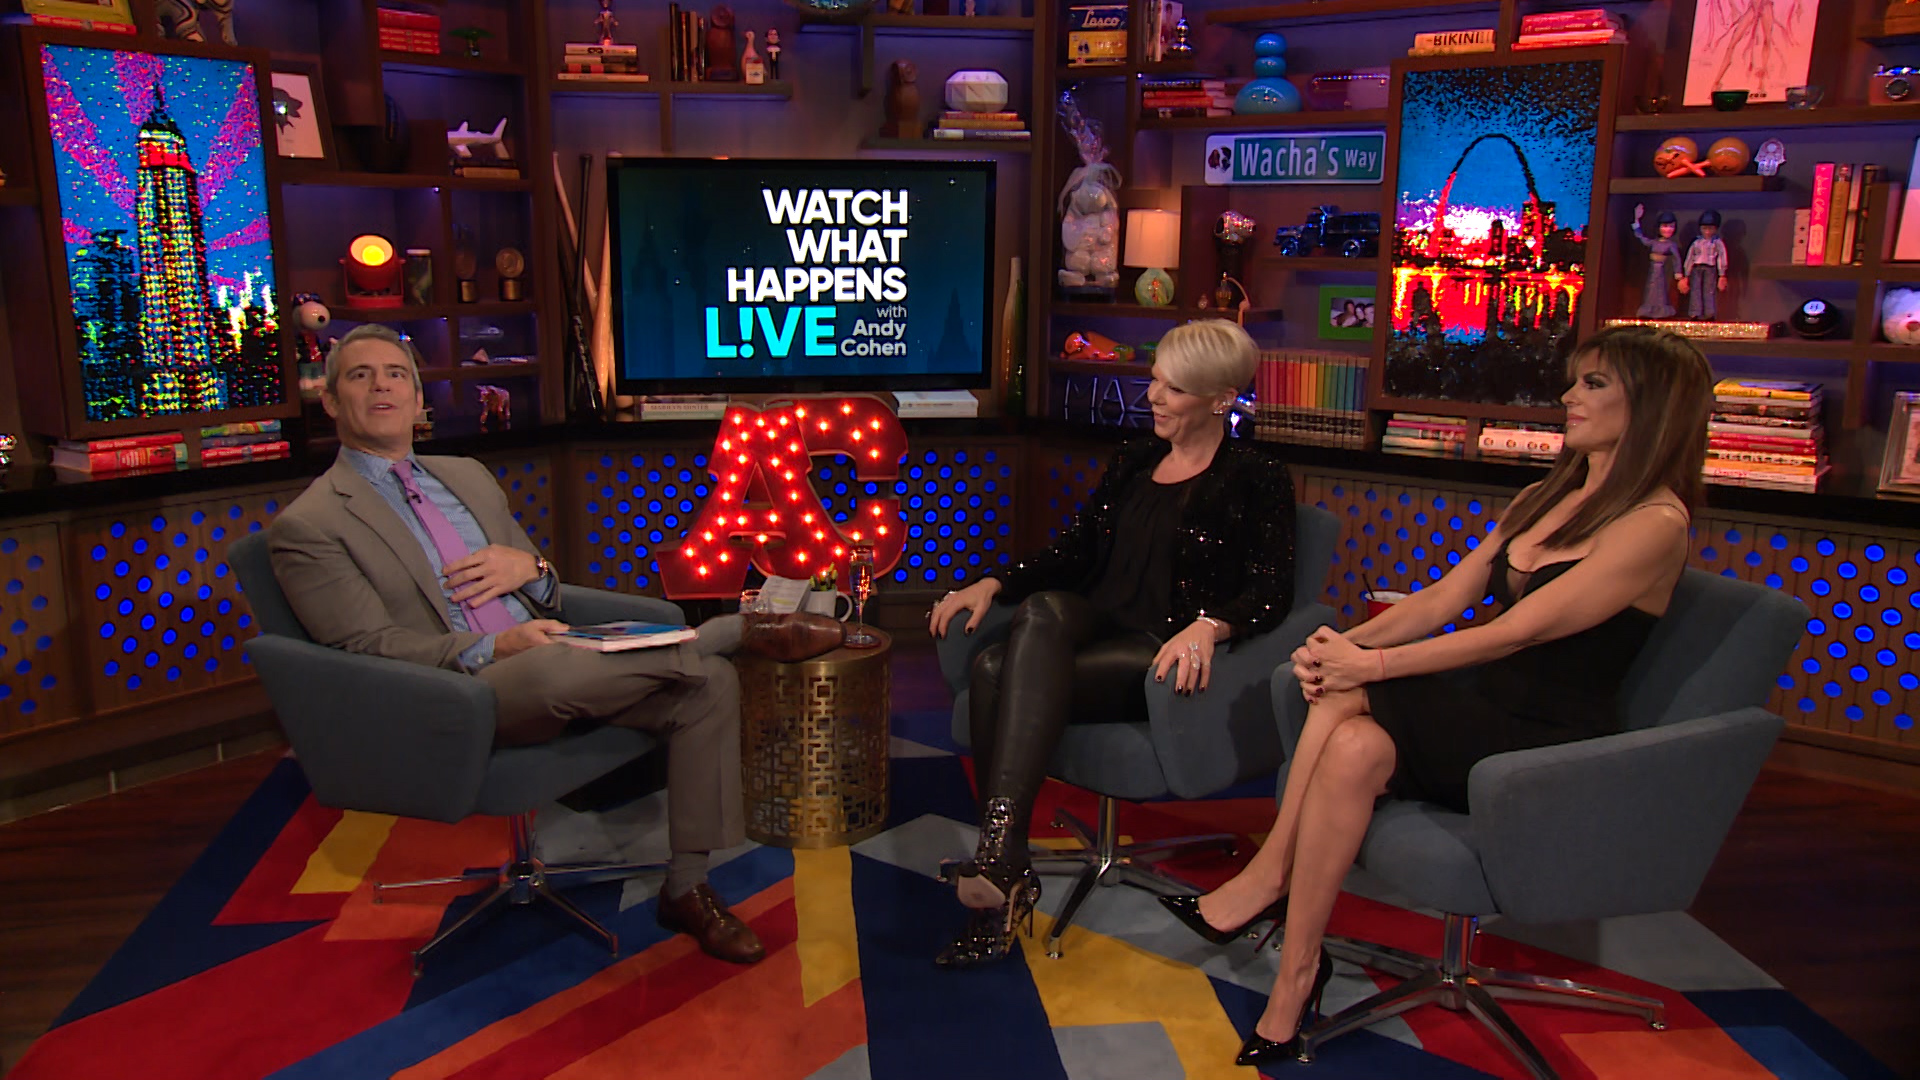 After Show: Lisa's Encounter with Brandi Glanville